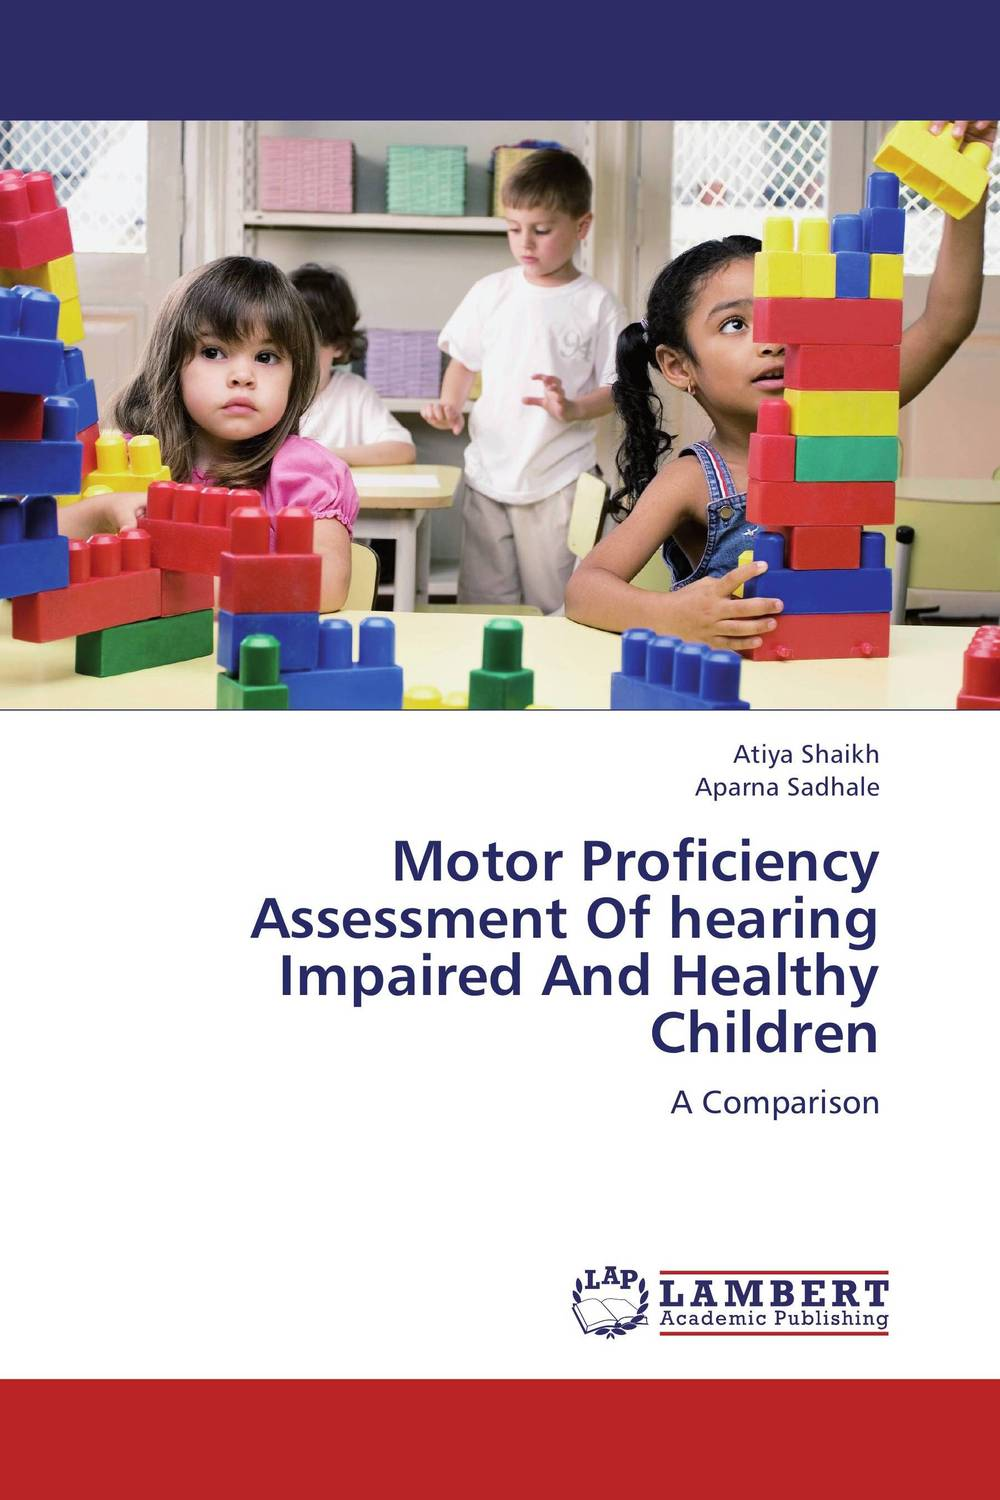 Motor Proficiency Assessment Of hearing Impaired And Healthy Children assessment and treatment of depression in children and adolescents